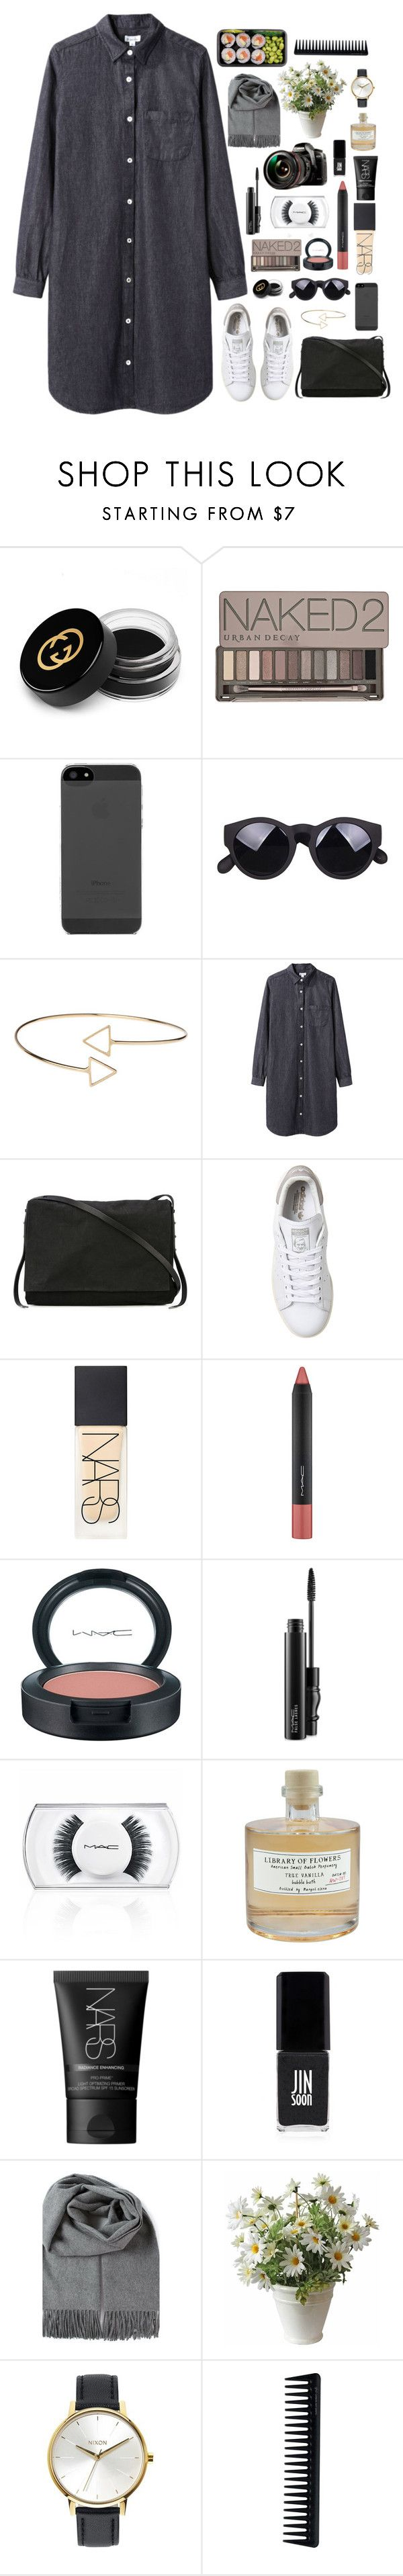 """""""#50"""" by anastasiasara-1 on Polyvore featuring Gucci, Urban Decay, Topshop, Steven Alan, Rick Owens, adidas, NARS Cosmetics, MAC Cosmetics, Panasonic and Library of Flowers"""